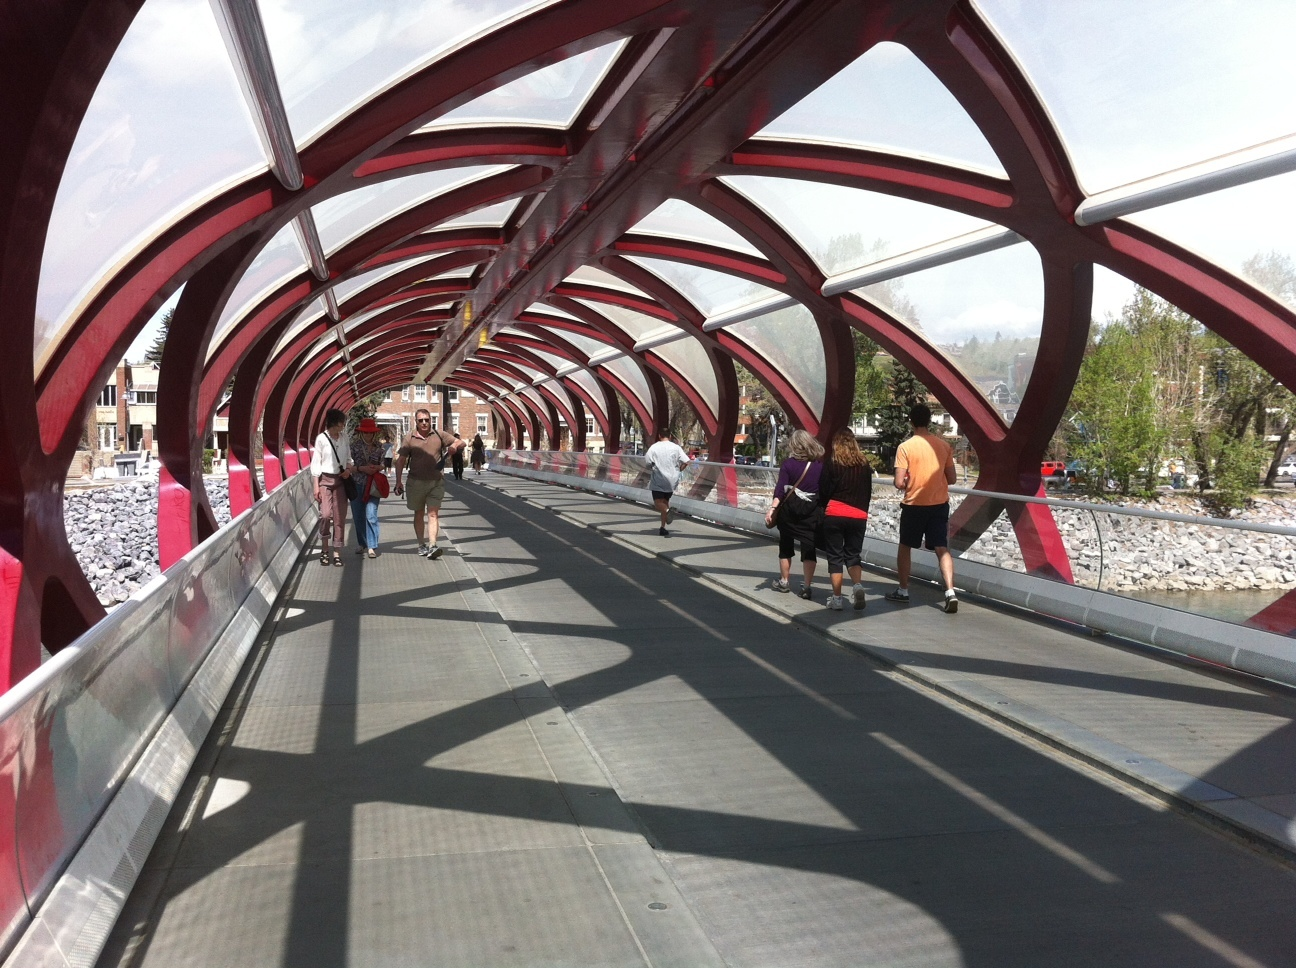 Calgary's Peace Bridge designed by Santiago Calatrava is a popular place for pedestrians, joggers and cyclists to cross the Bow River.